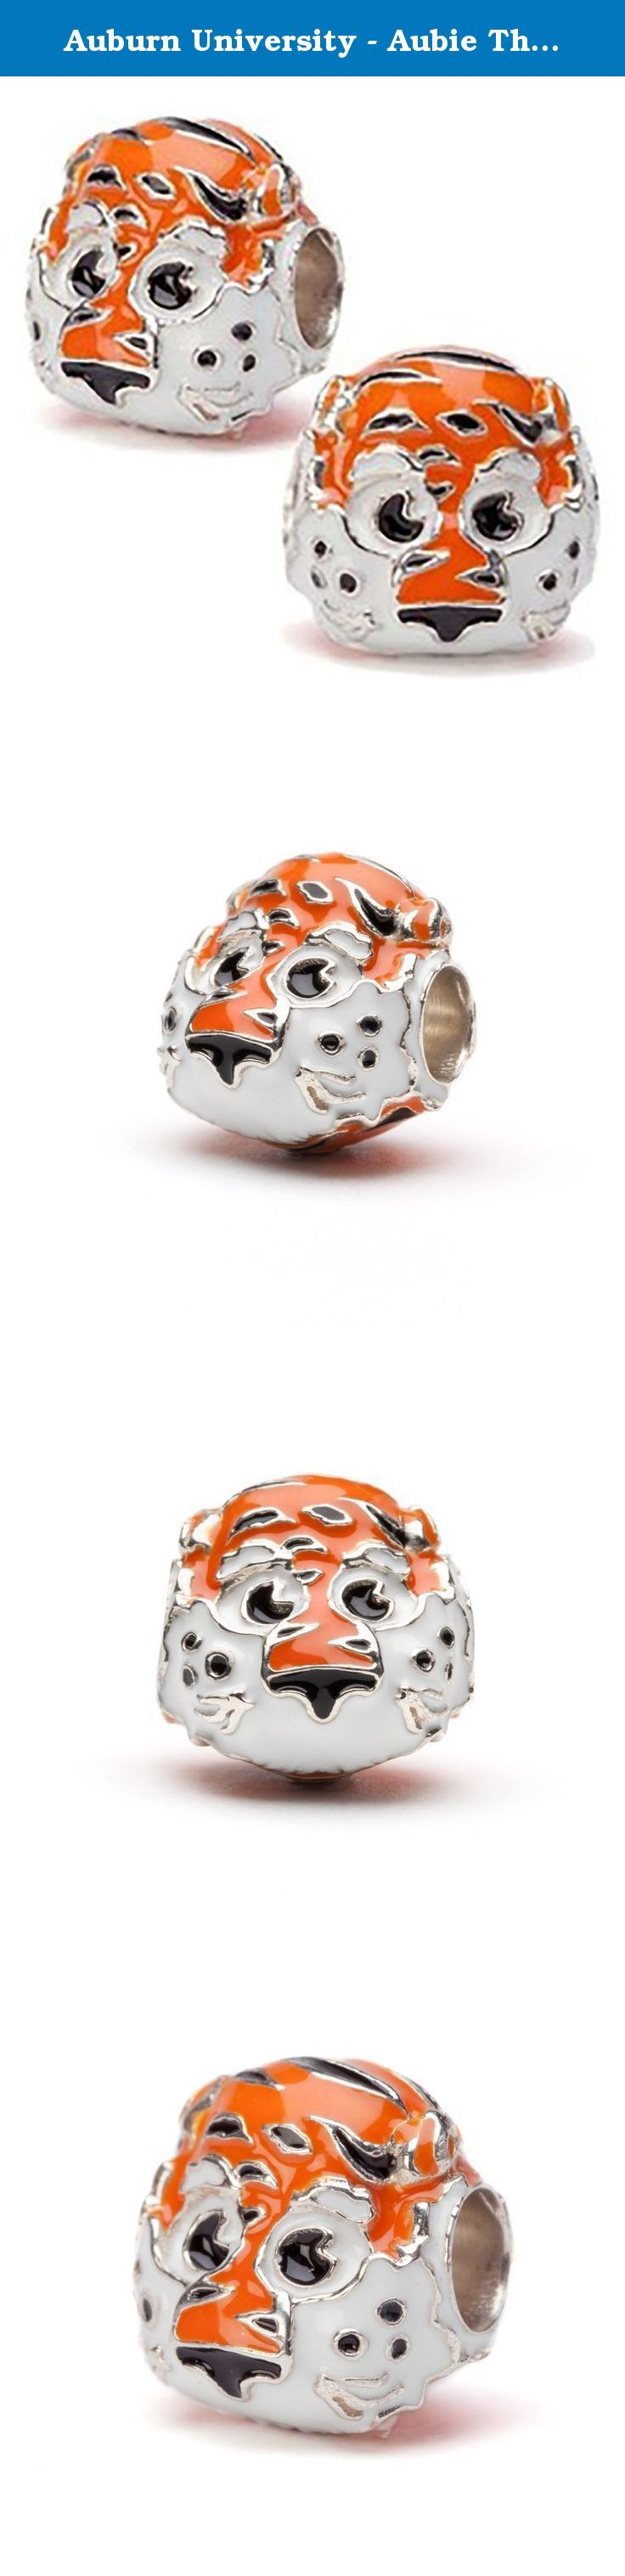 Auburn University - Aubie The Tiger 3-D Bead Charms - Set of 2 - Fits Pandora & Others. Set of TWO Auburn Aubie bead charms that will fit Pandora, Brighton, Troll, Biagi, Chamilia and Stone Armory charm bracelets. These unique charms are ready for any Auburn University Tiger event.